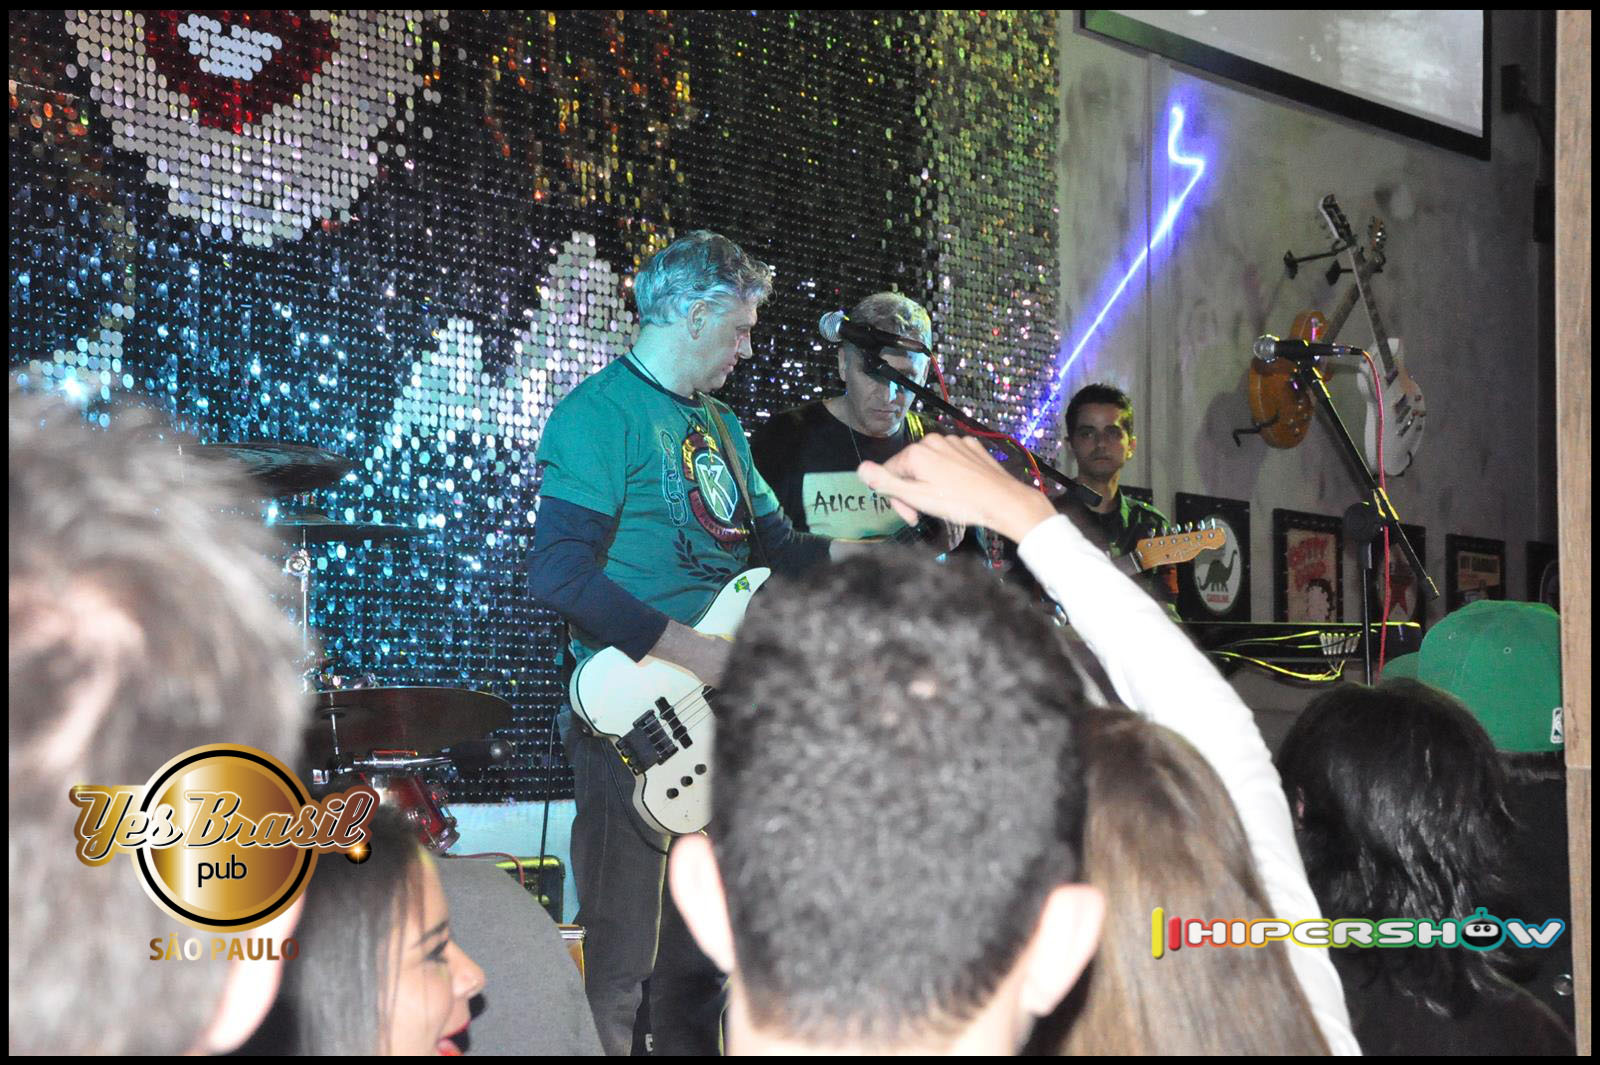 Noite do Rock In Roll com o cantor Mauricio Gasperini no palco do Yes Brasil Pub